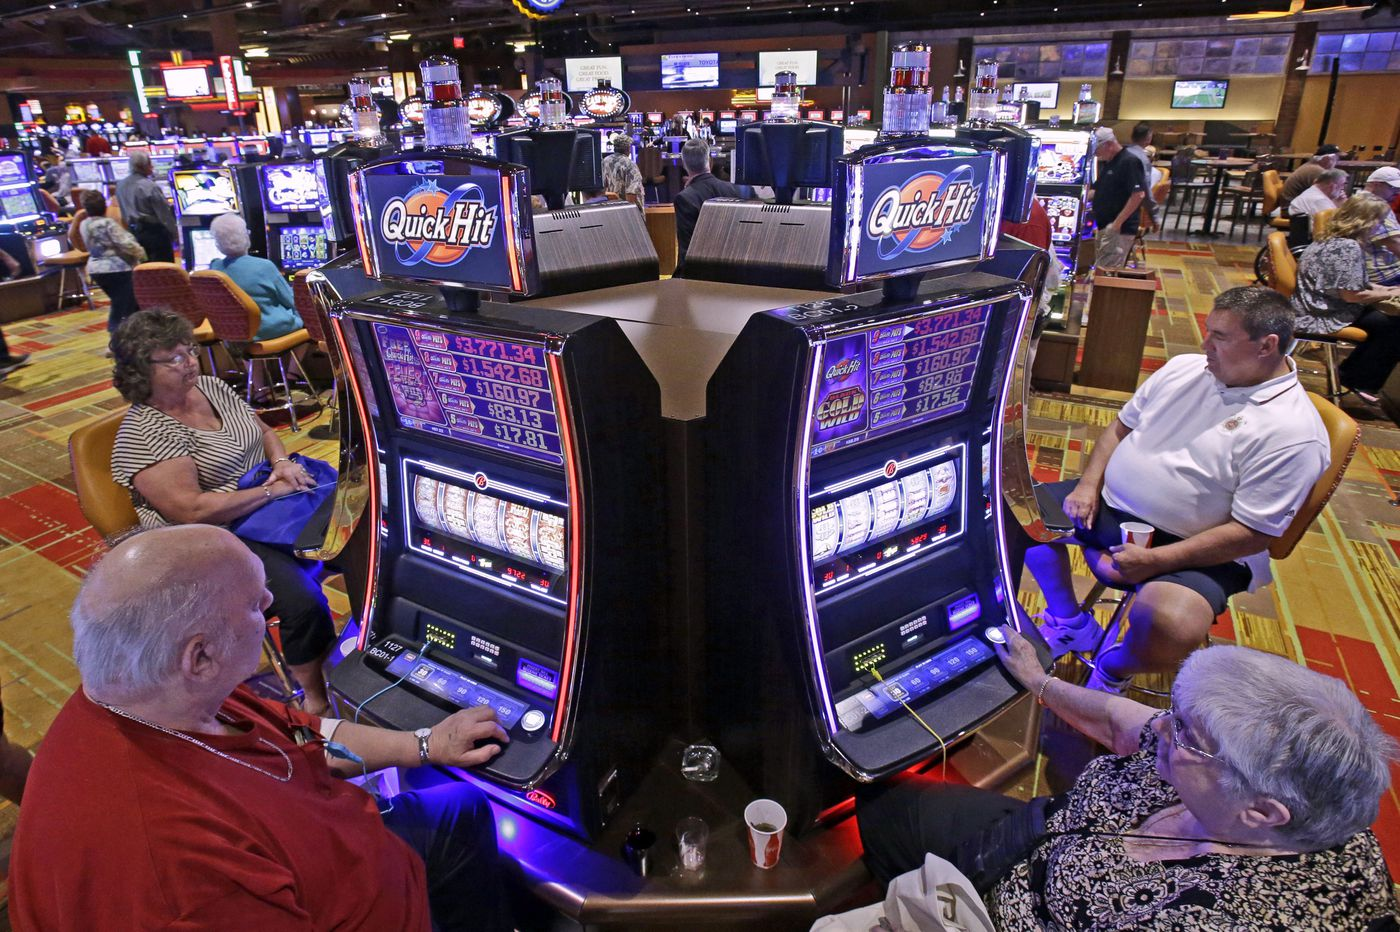 Betting with a smartphone? The casinos know who you are, and where you are located.